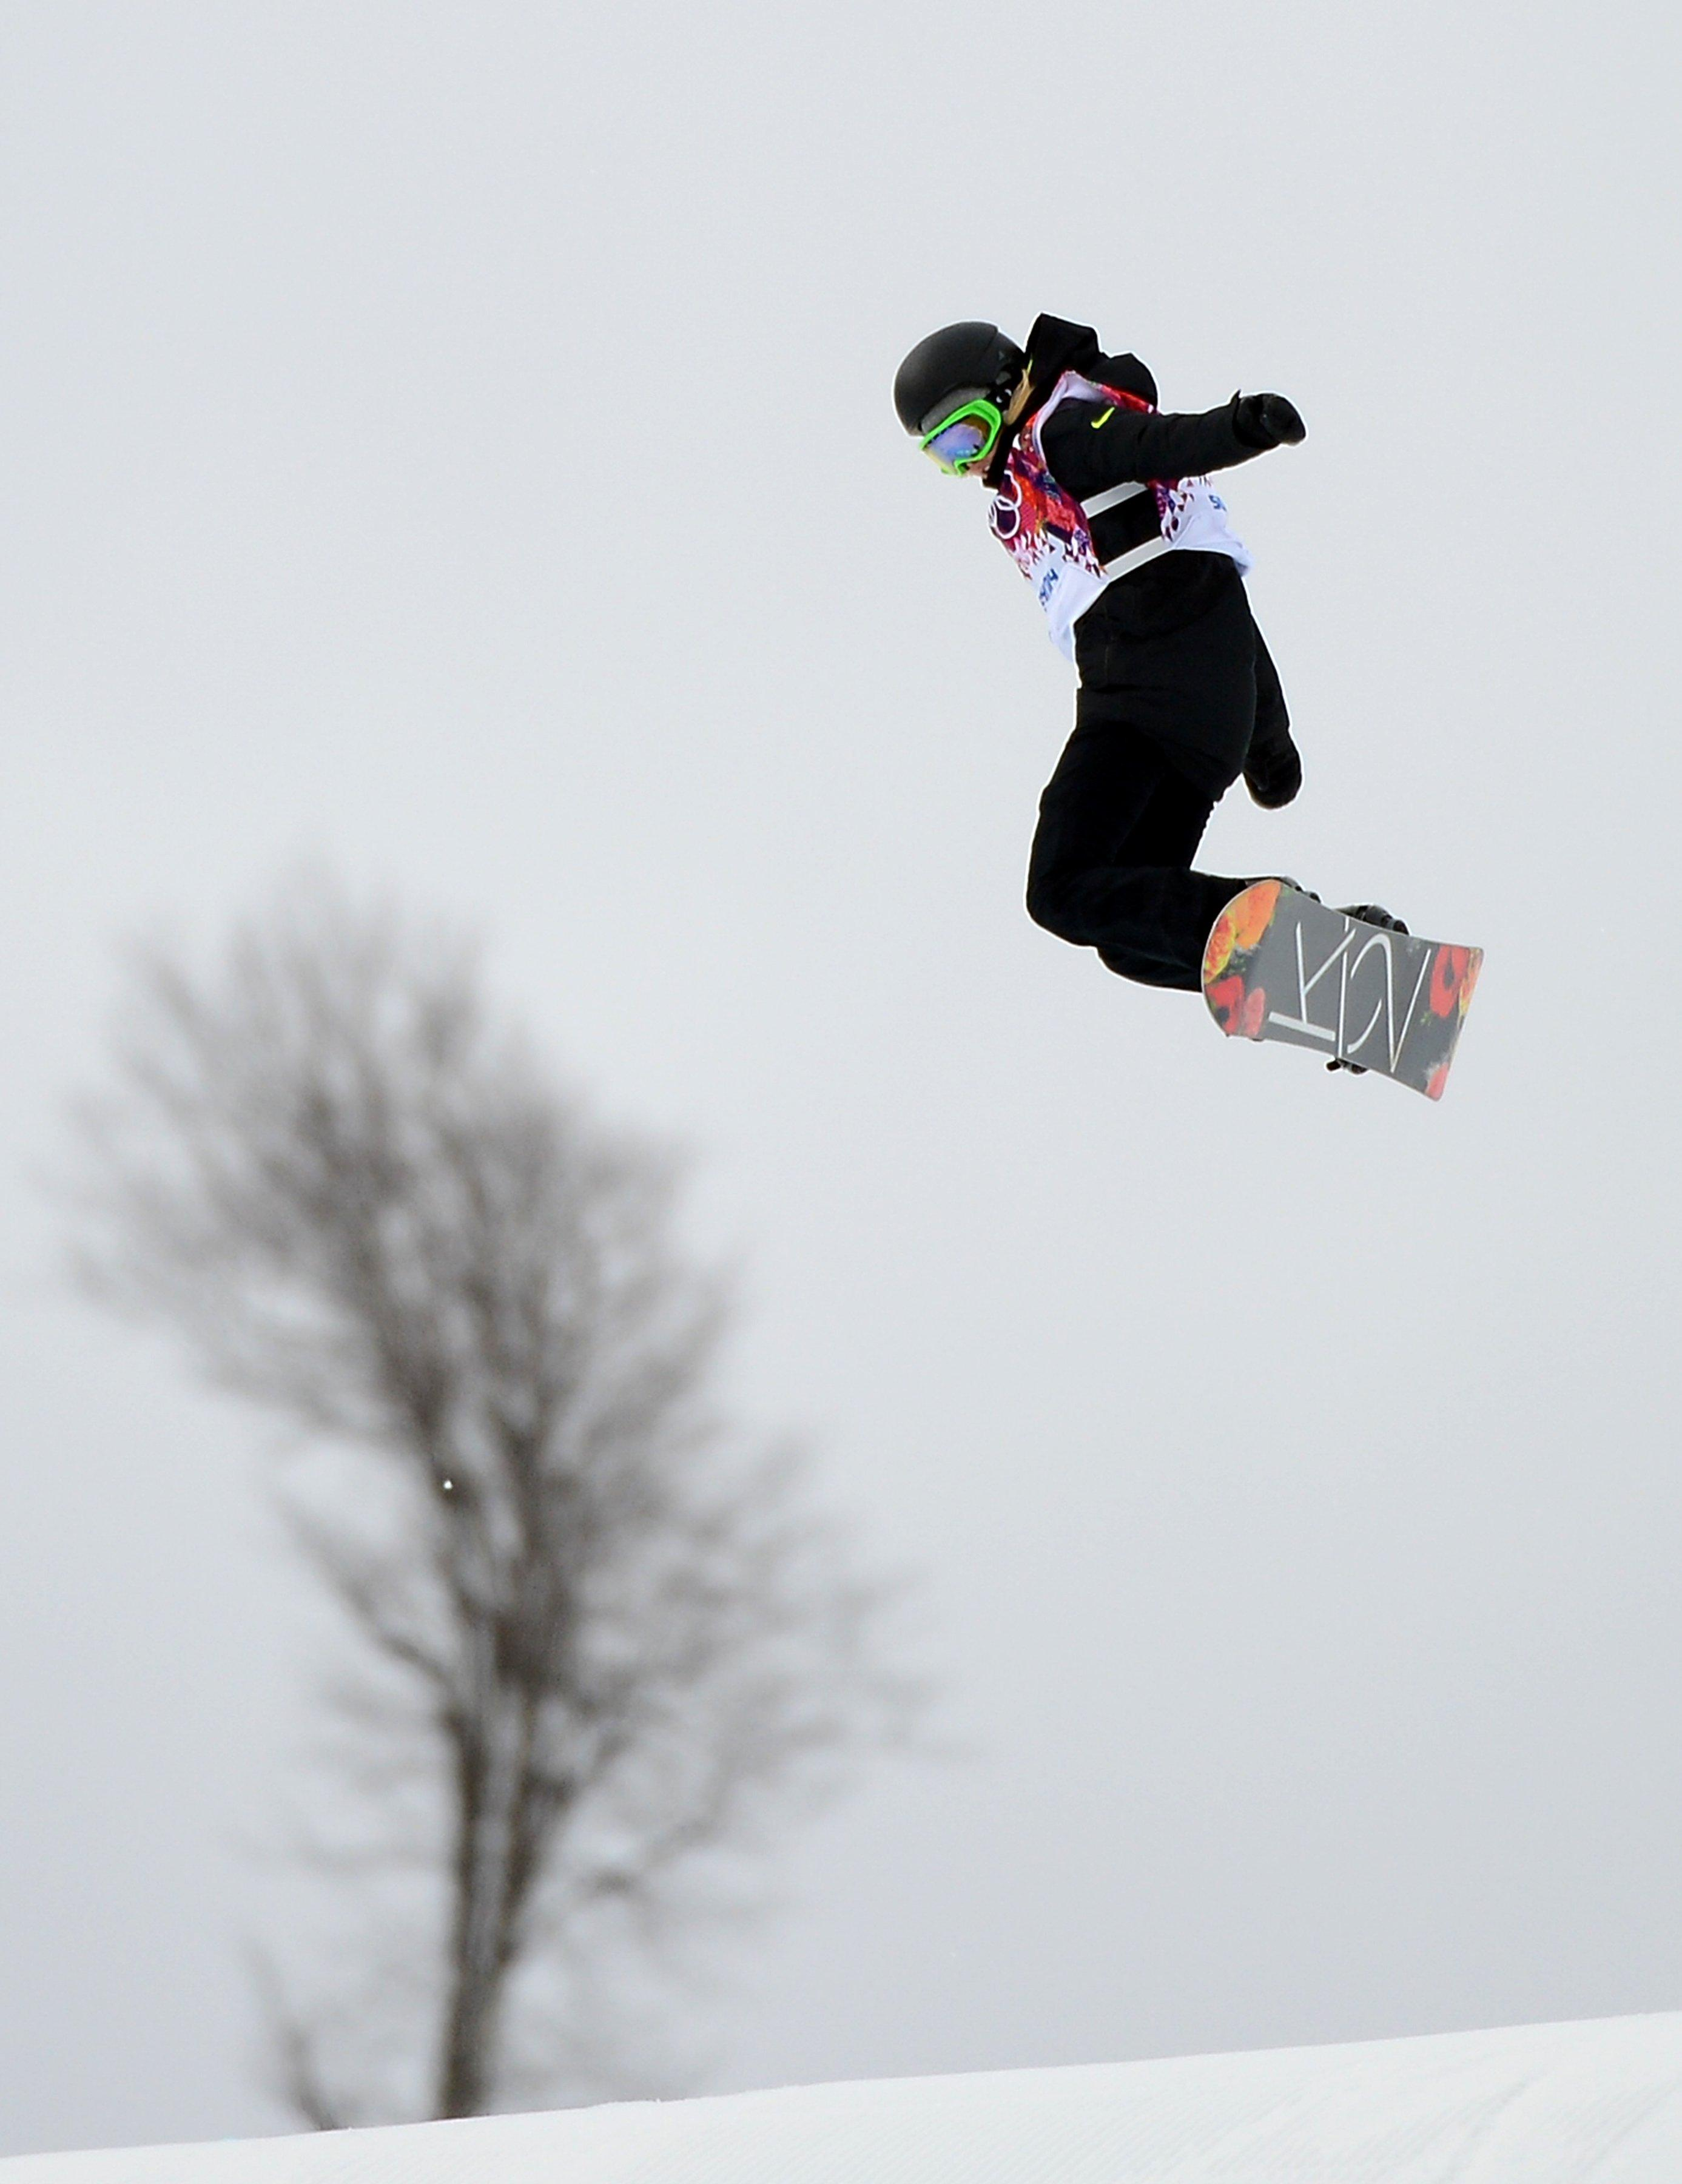 In women's slope, Silje Norendal took first, and became back-to-back gold medalist. Photo courtesy of Tribune News Services